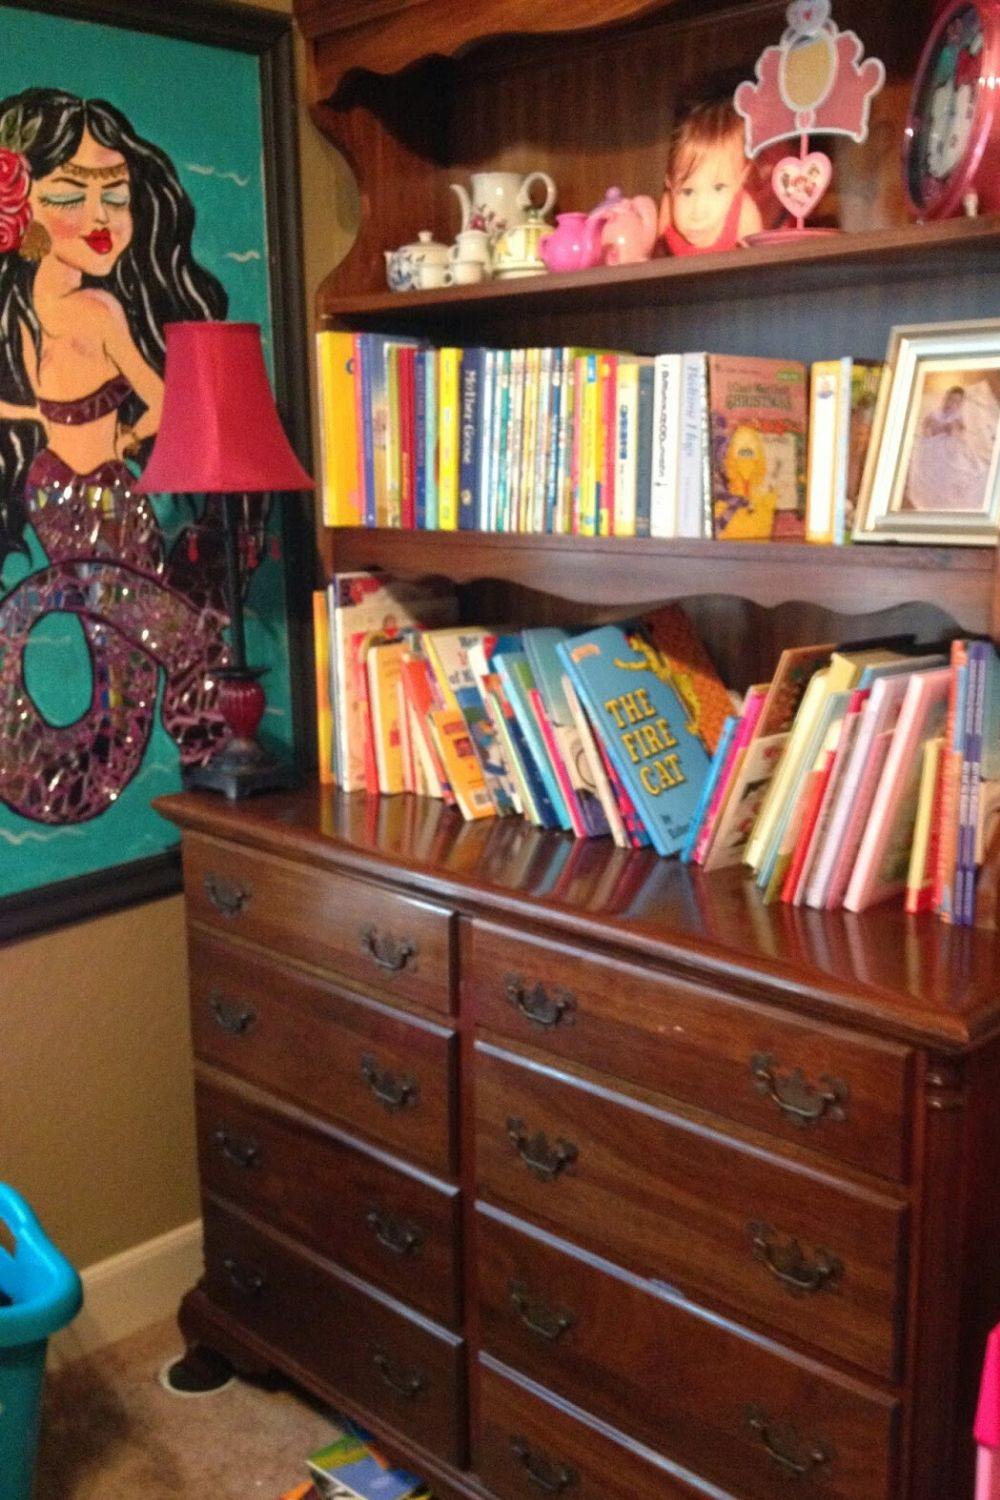 Old dresser and hutch filled with books